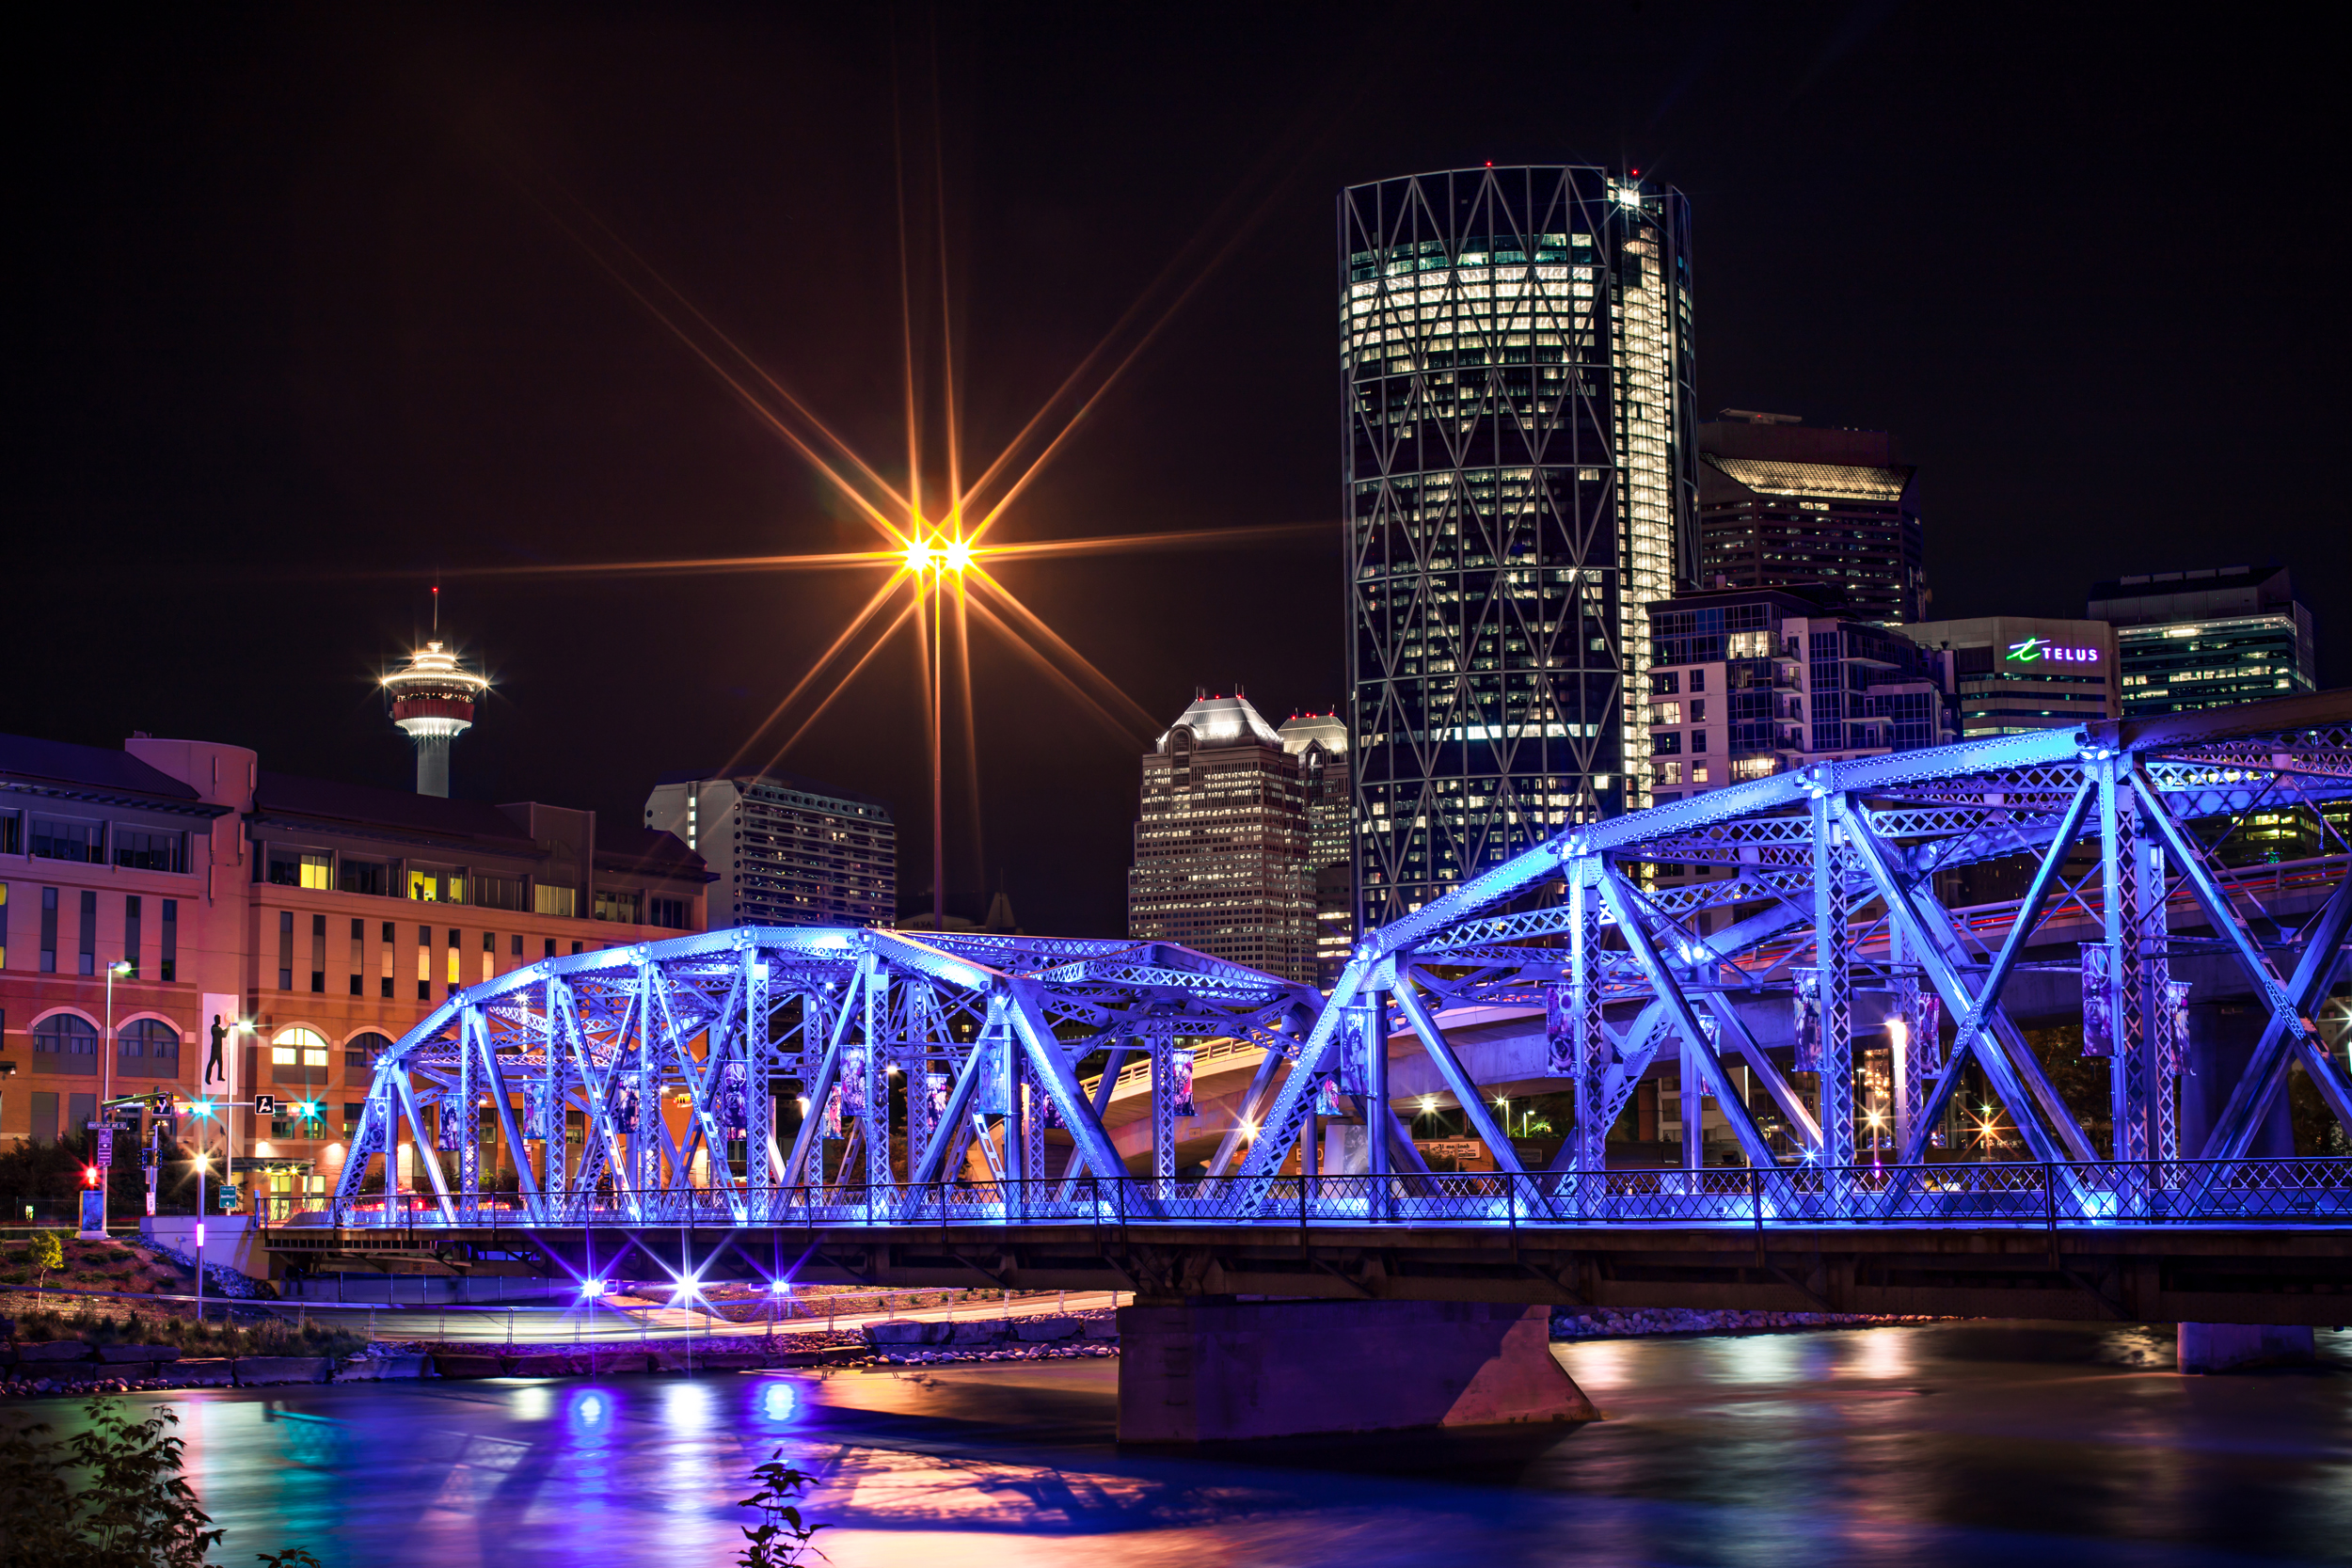 Calgary, Alberta at night